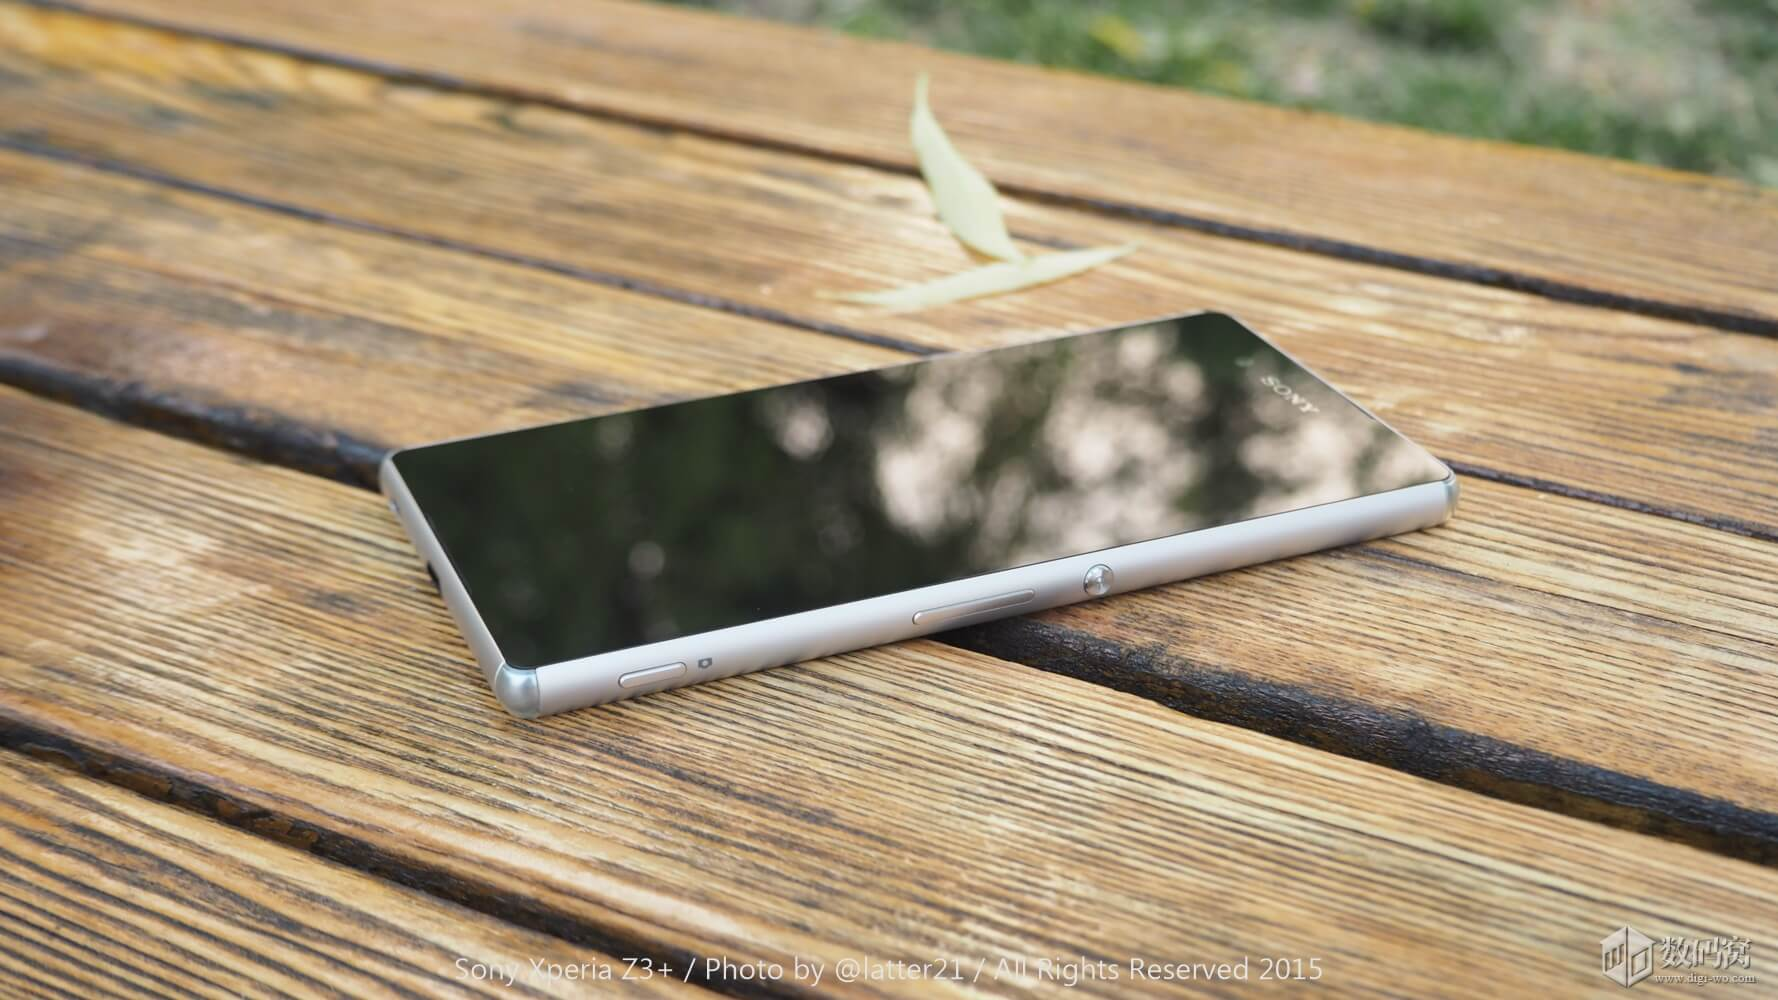 Aqua Green Xperia Z3+ Review